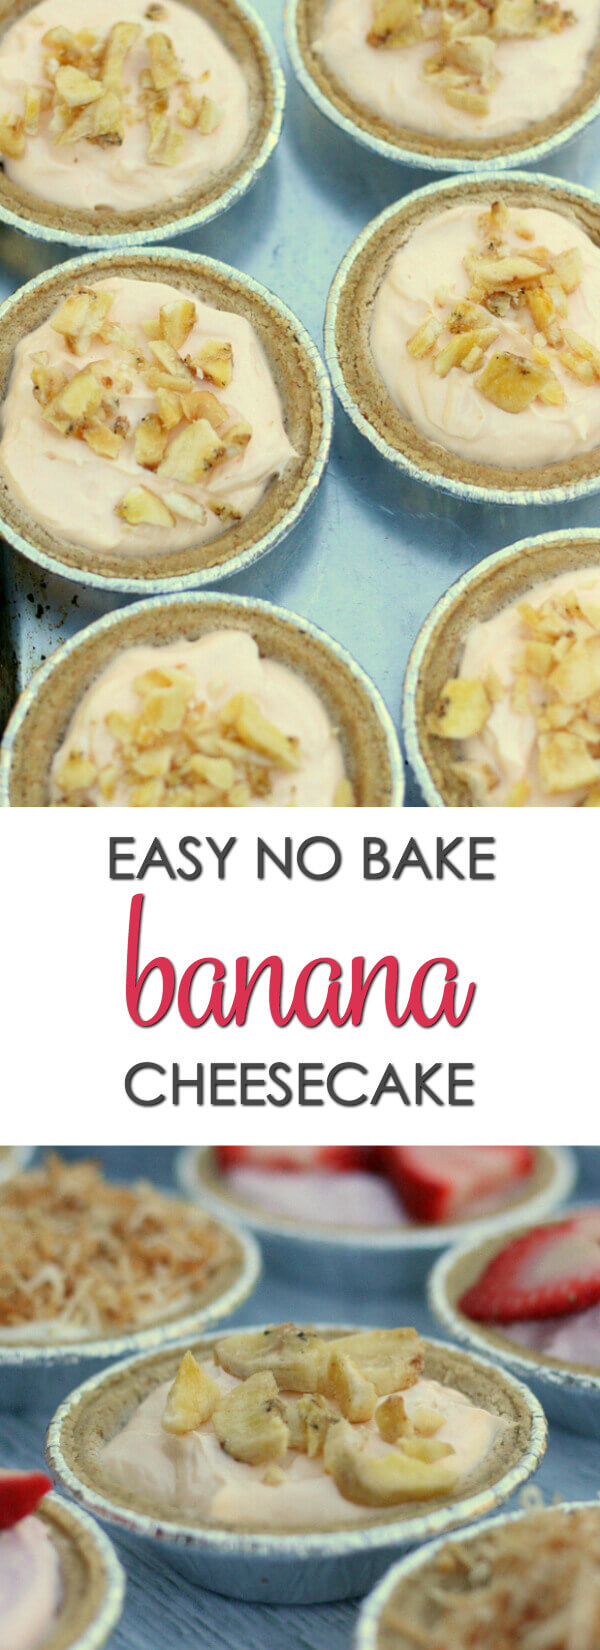 No Bake Banana Cheesecake - This easy homemade no bake cheesecake is luscious and super simple